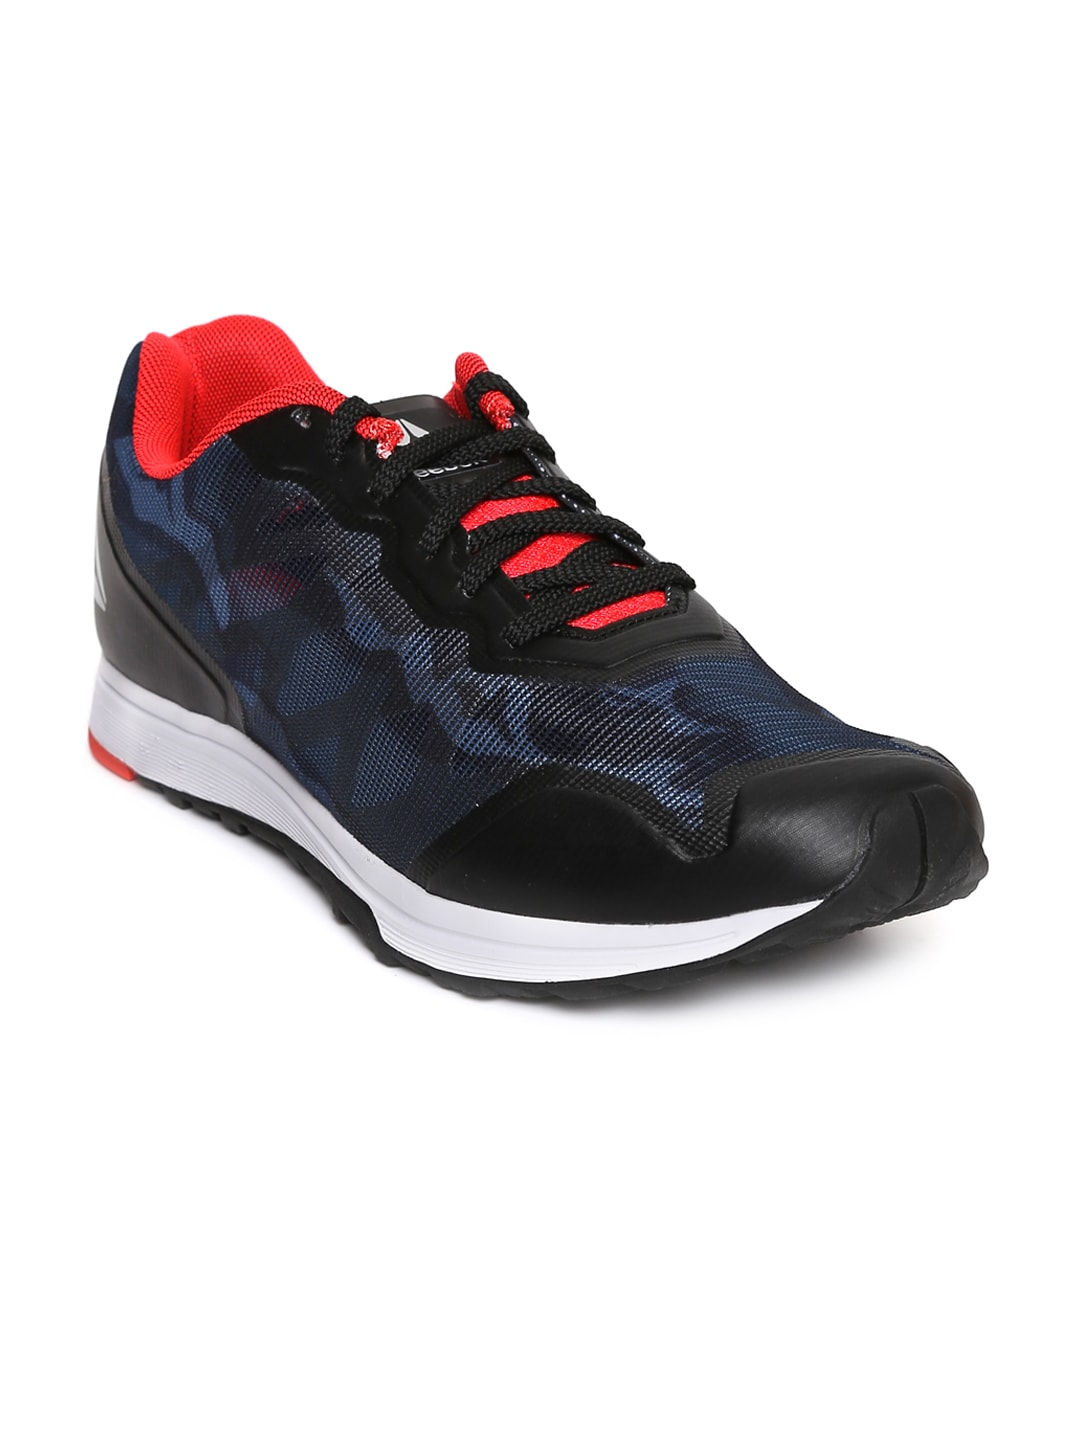 Sports Shoes - Buy Sport Shoes For Men   Women Online  35f4d8818